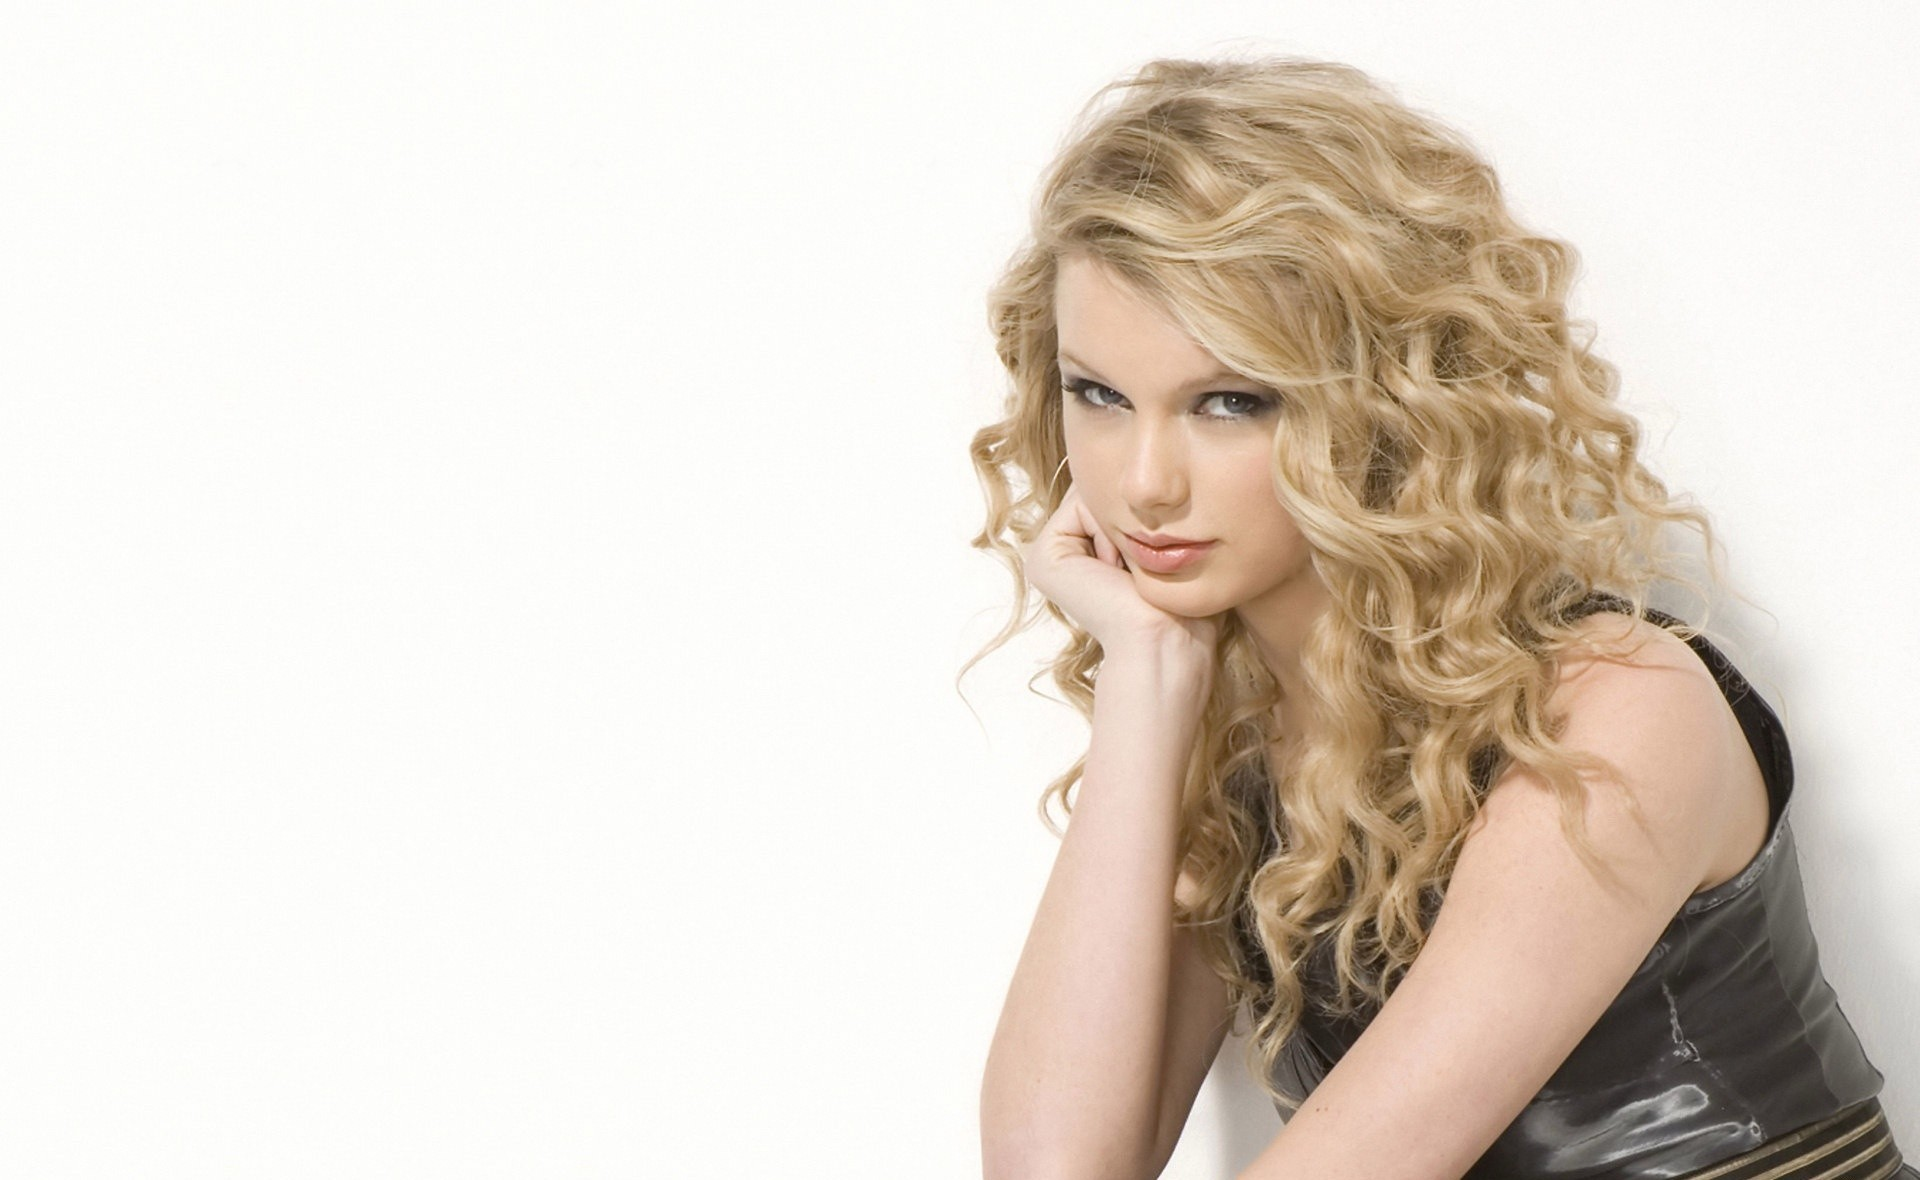 Taylor Swift Hd Wallpaper Background Image 1920x1180 Id 394312